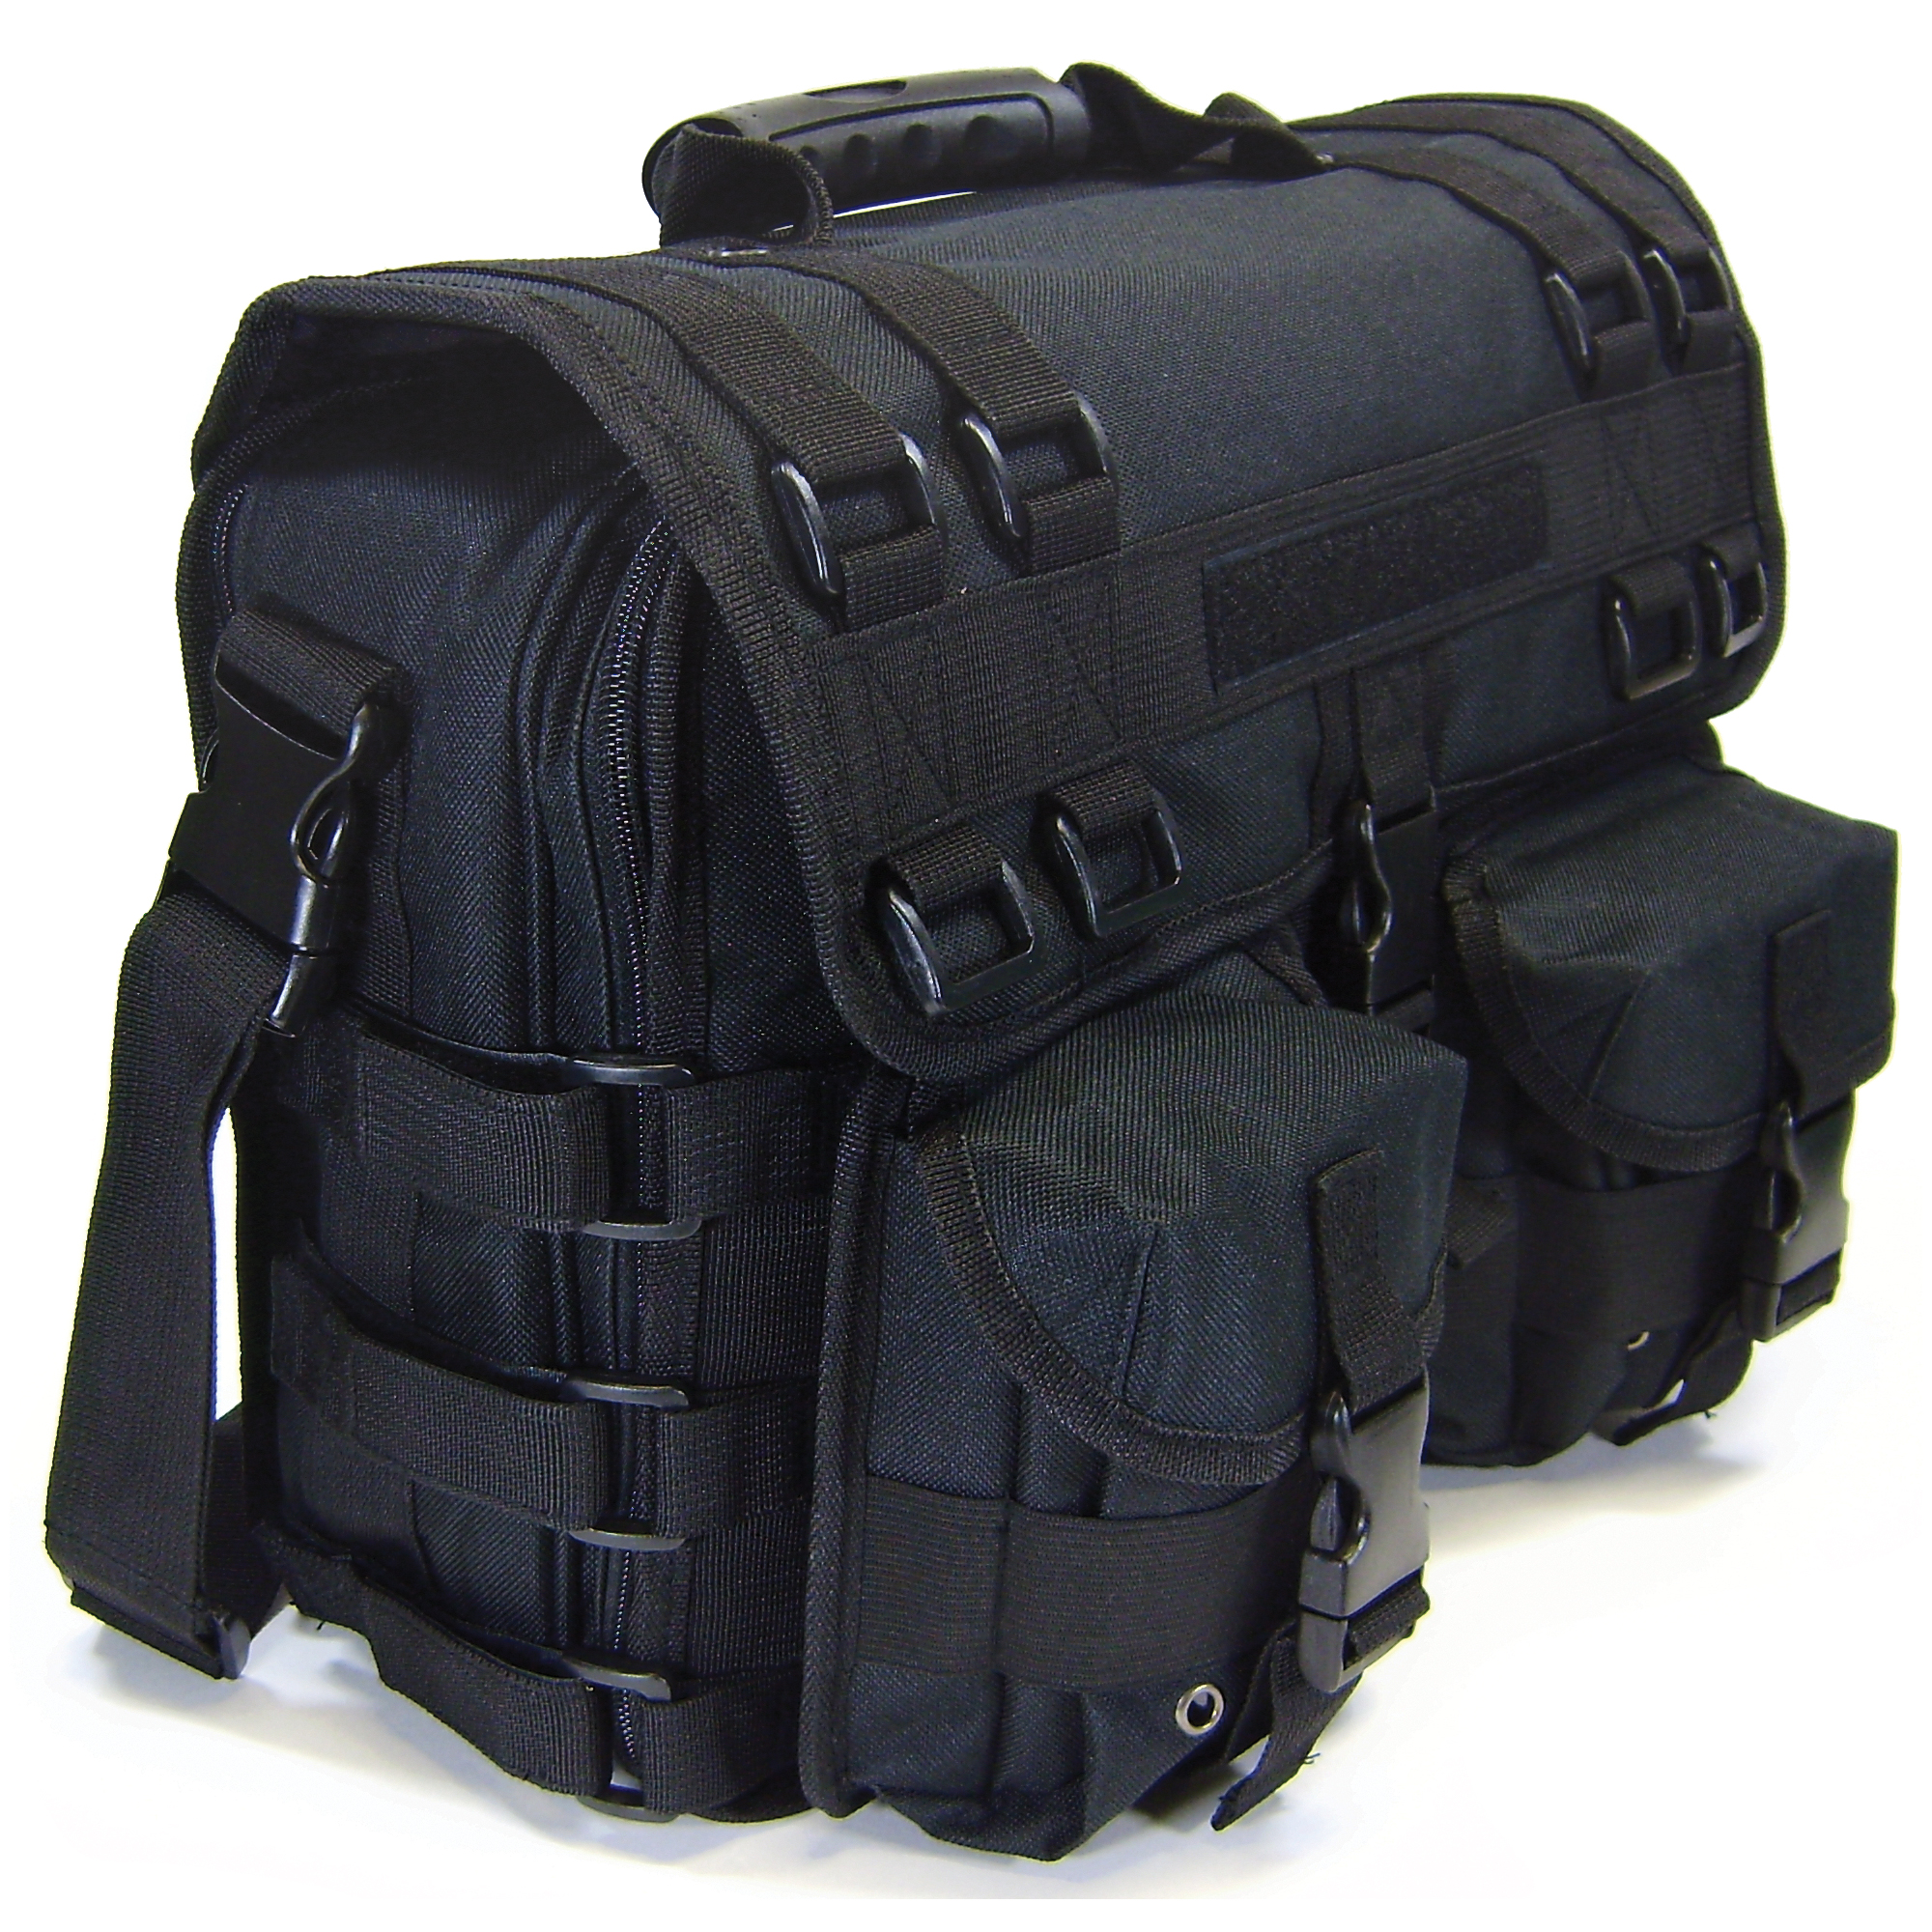 """Constructed of 600D poly materials with double coated PVC lining for strength and durability. This is your ultimate briefcase"""" range bag"""" gear bag or overnight bag!"""